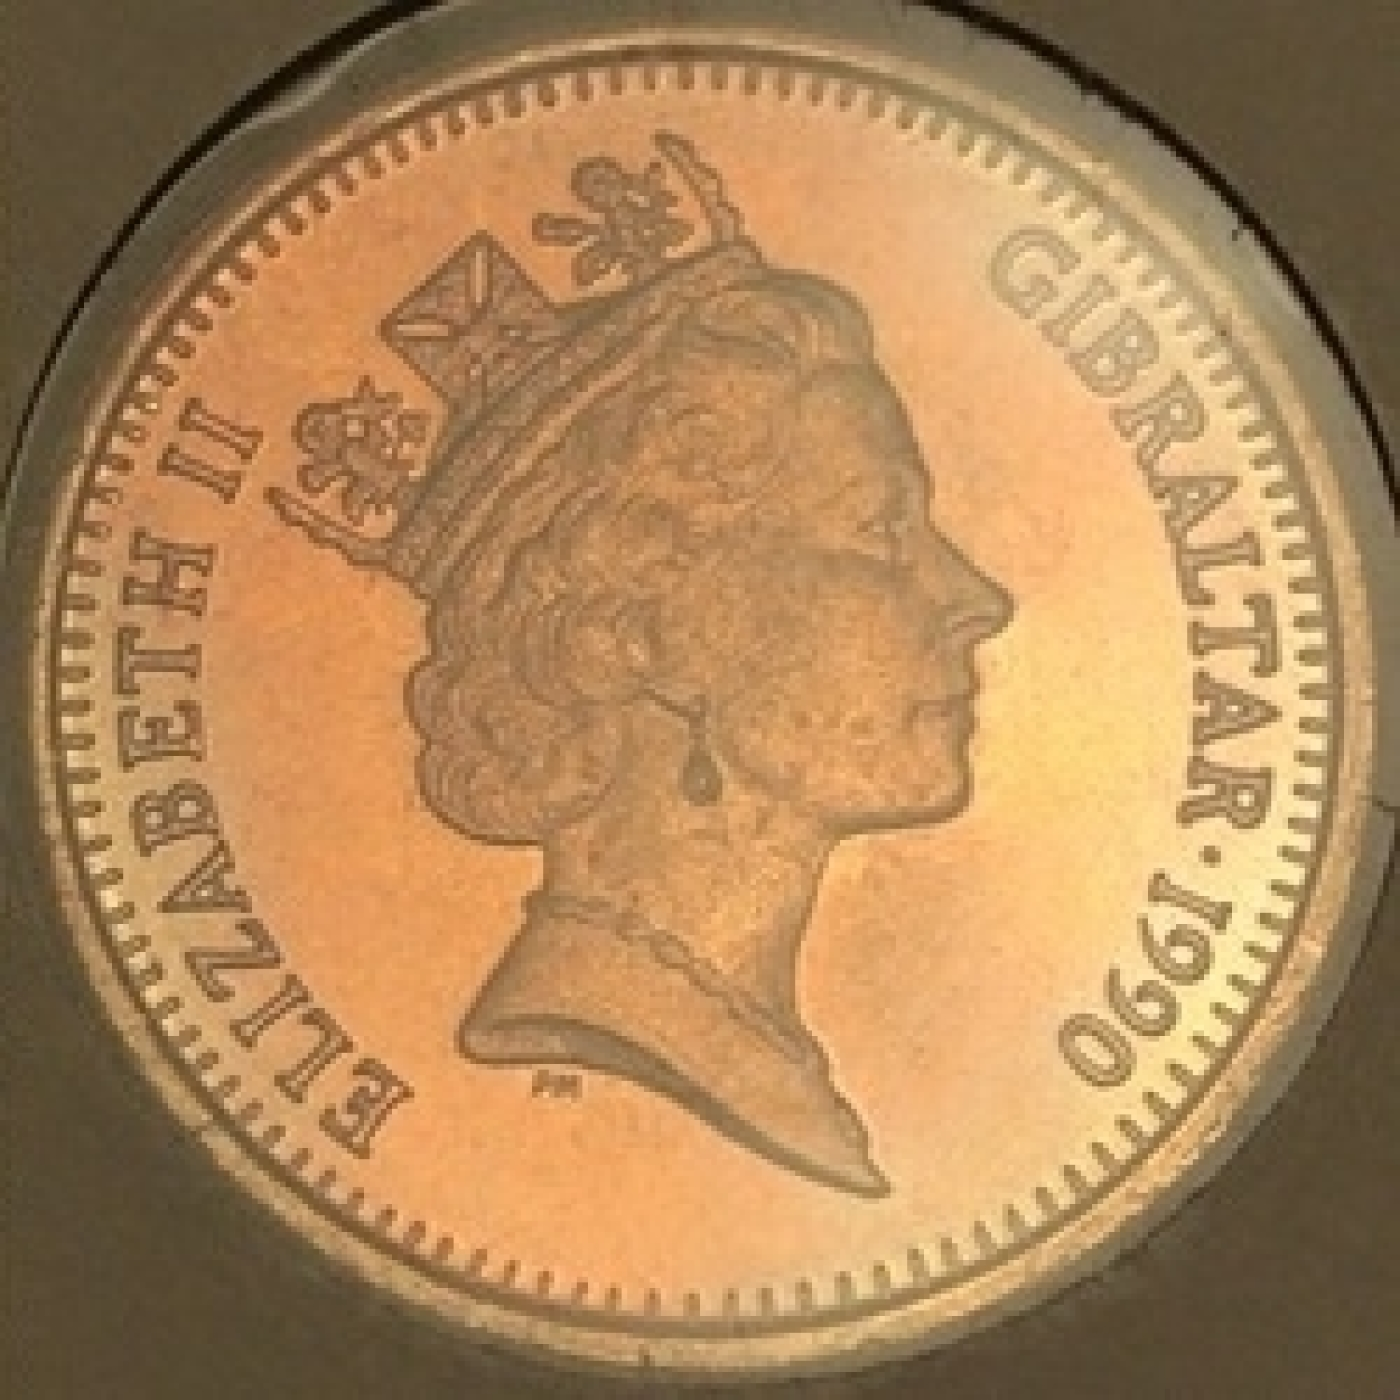 1 Penny 1990 AA, British Colony (1989-2000) - Gibraltar - Coin - 40047